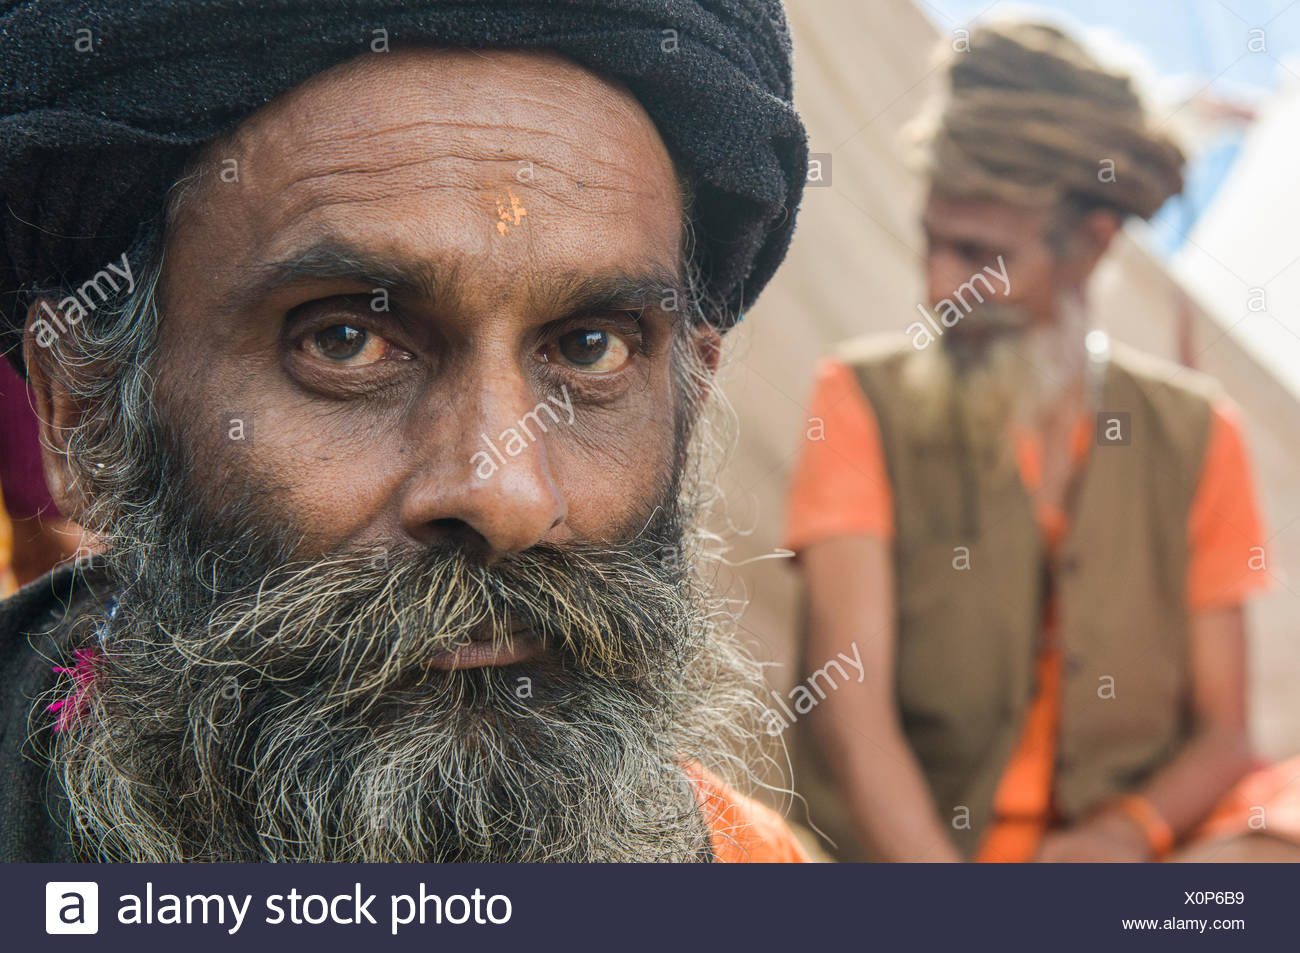 Portrait of a Udaisin Sadhu, holy man, at the Sangam, the confluence of the rivers Ganges, Yamuna and Saraswati - Stock Image